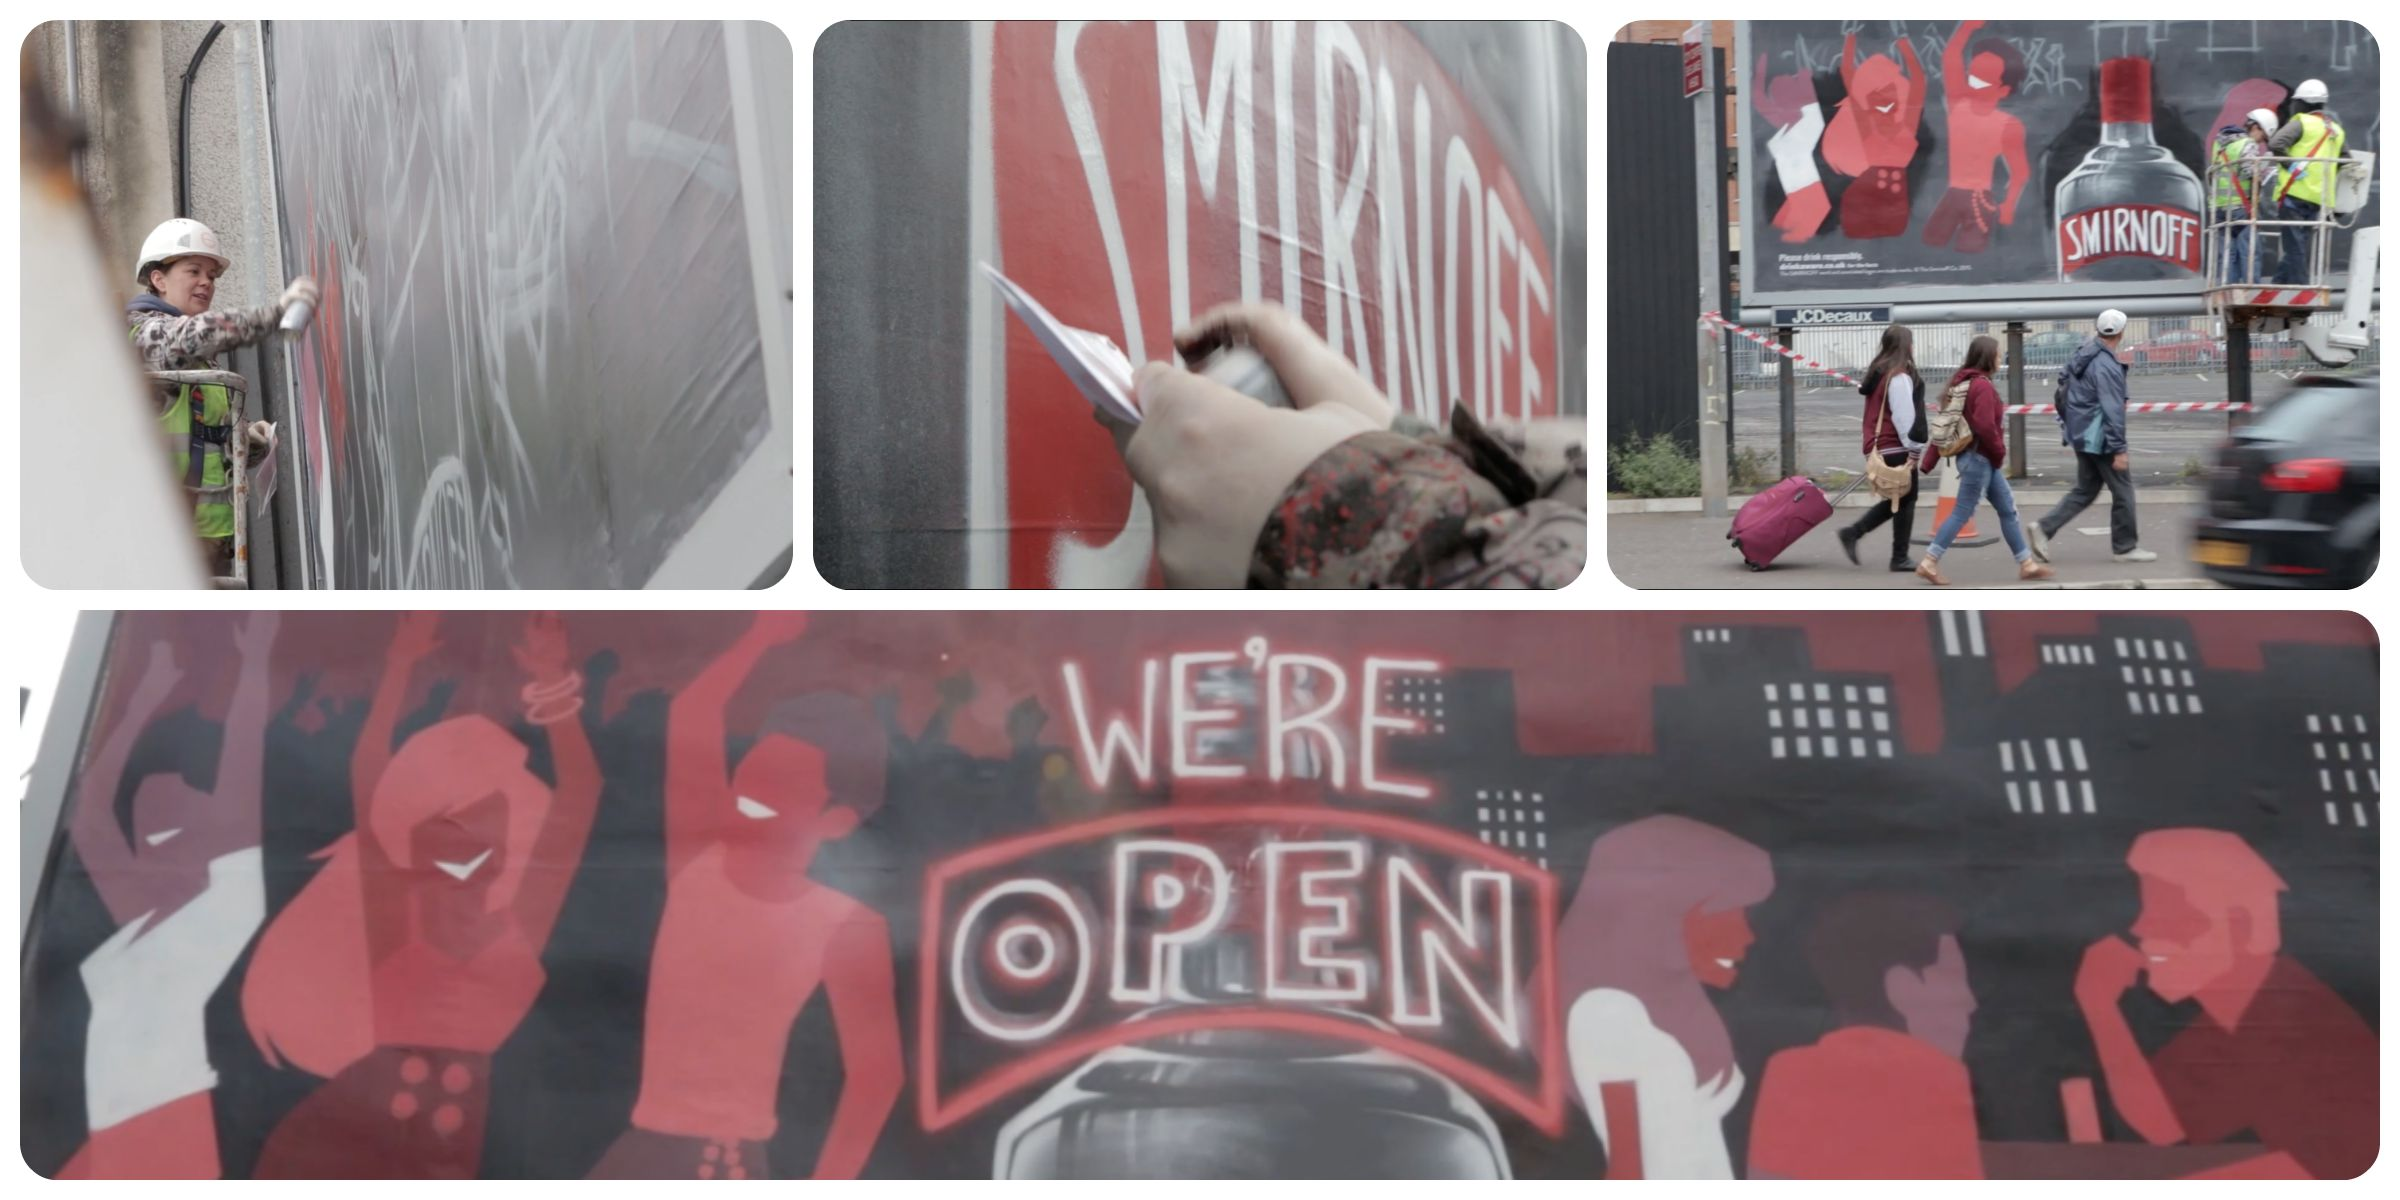 We're open Collage 2 Option 2.jpg